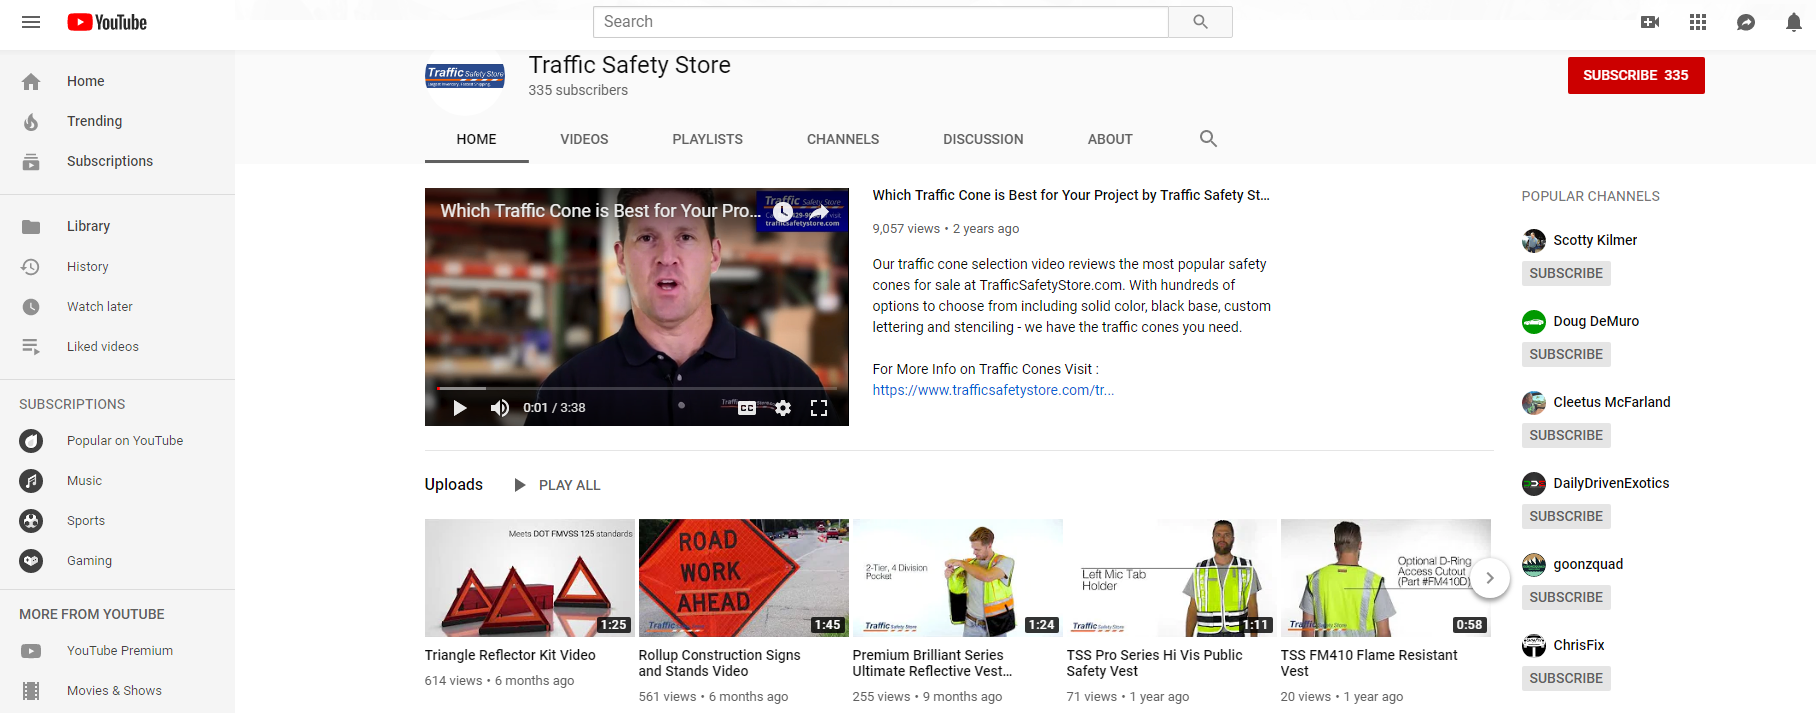 traffic safety store youtube